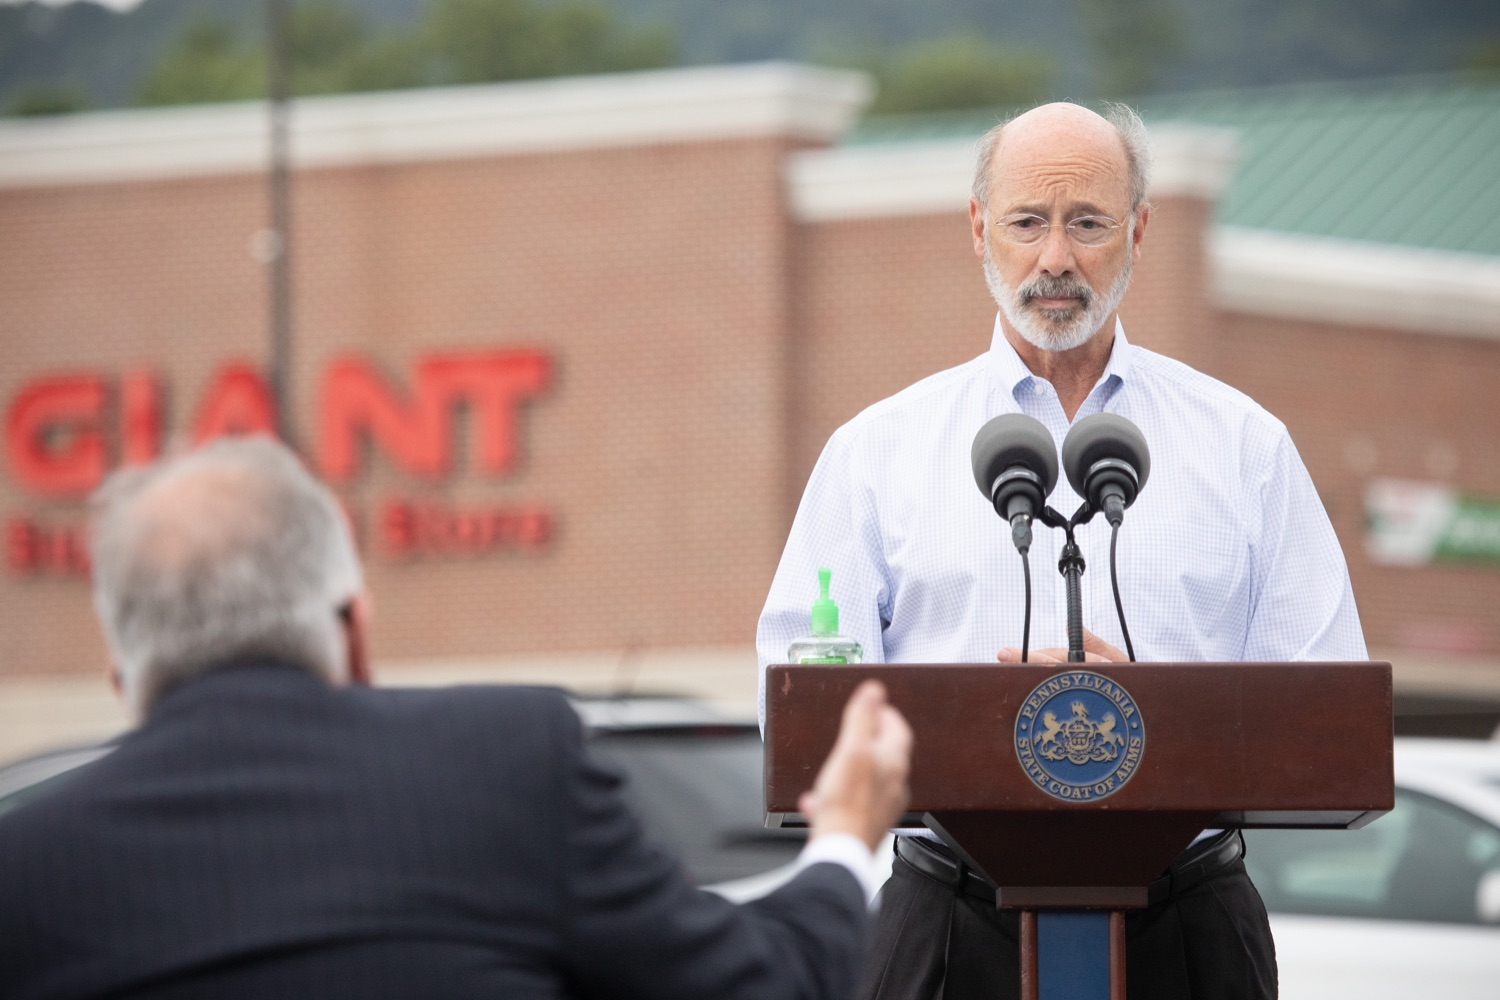 """<a href=""""https://filesource.wostreaming.net/commonwealthofpa/photo/18166_gov_cares_act_dz_15.jpg"""" target=""""_blank"""">⇣Download Photo<br></a>Pennsylvania Governor Tom Wolf speaking to reporters at the announcement. Today, Governor Tom Wolf announced the availability of $50 million in grant funding to help employers provide hazard pay to employees in life-sustaining occupations during the COVID-19 pandemic. Hazard pay is intended to keep front-line employees working in vital industry sectors across Pennsylvania.  Harrisburg, PA  July 16, 2020"""